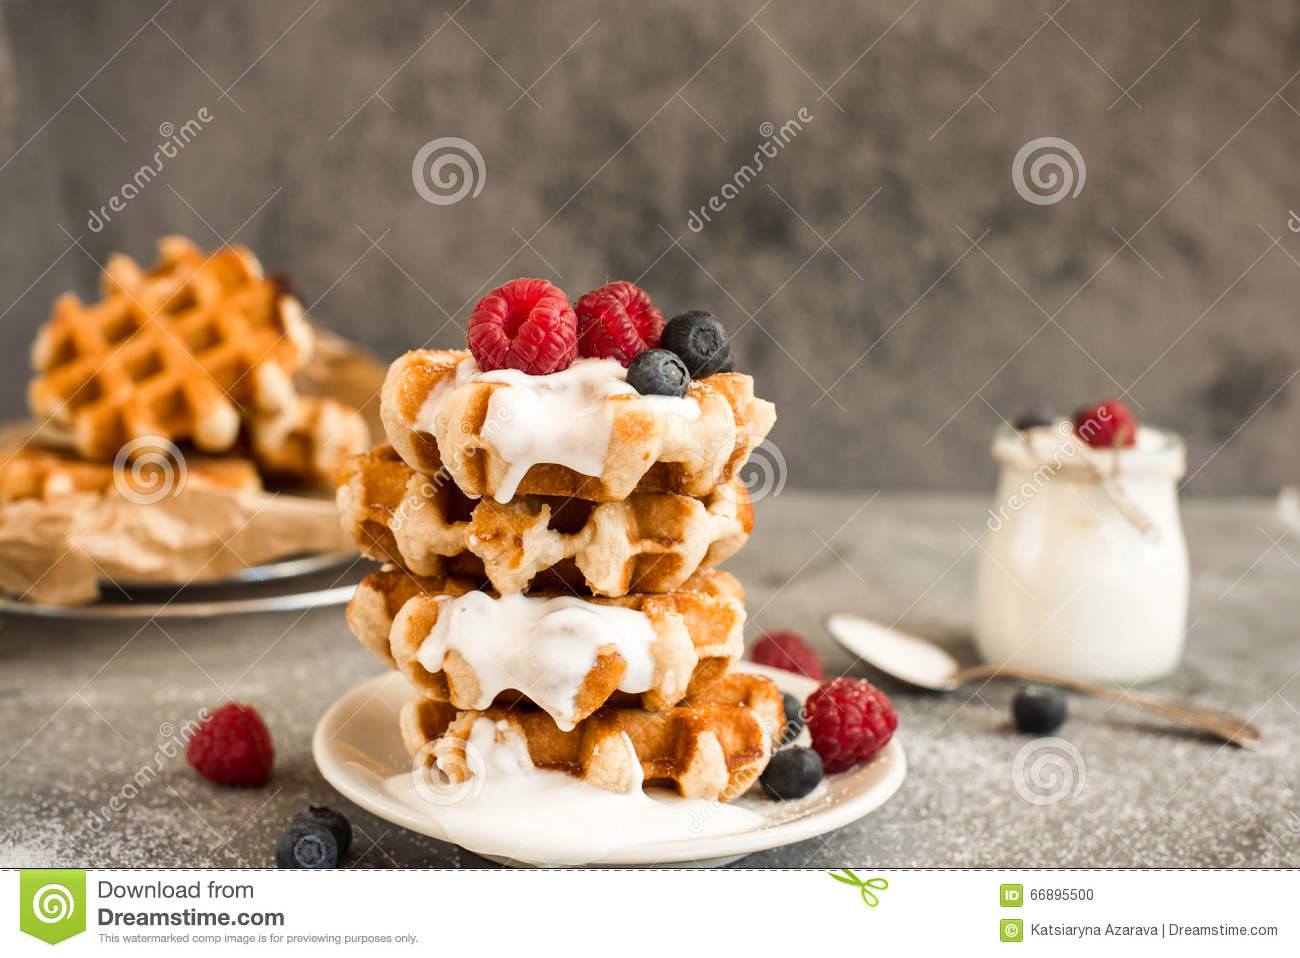 Homemade Belgian waffles with forest fruits, blueberries, raspberries and yogurt.